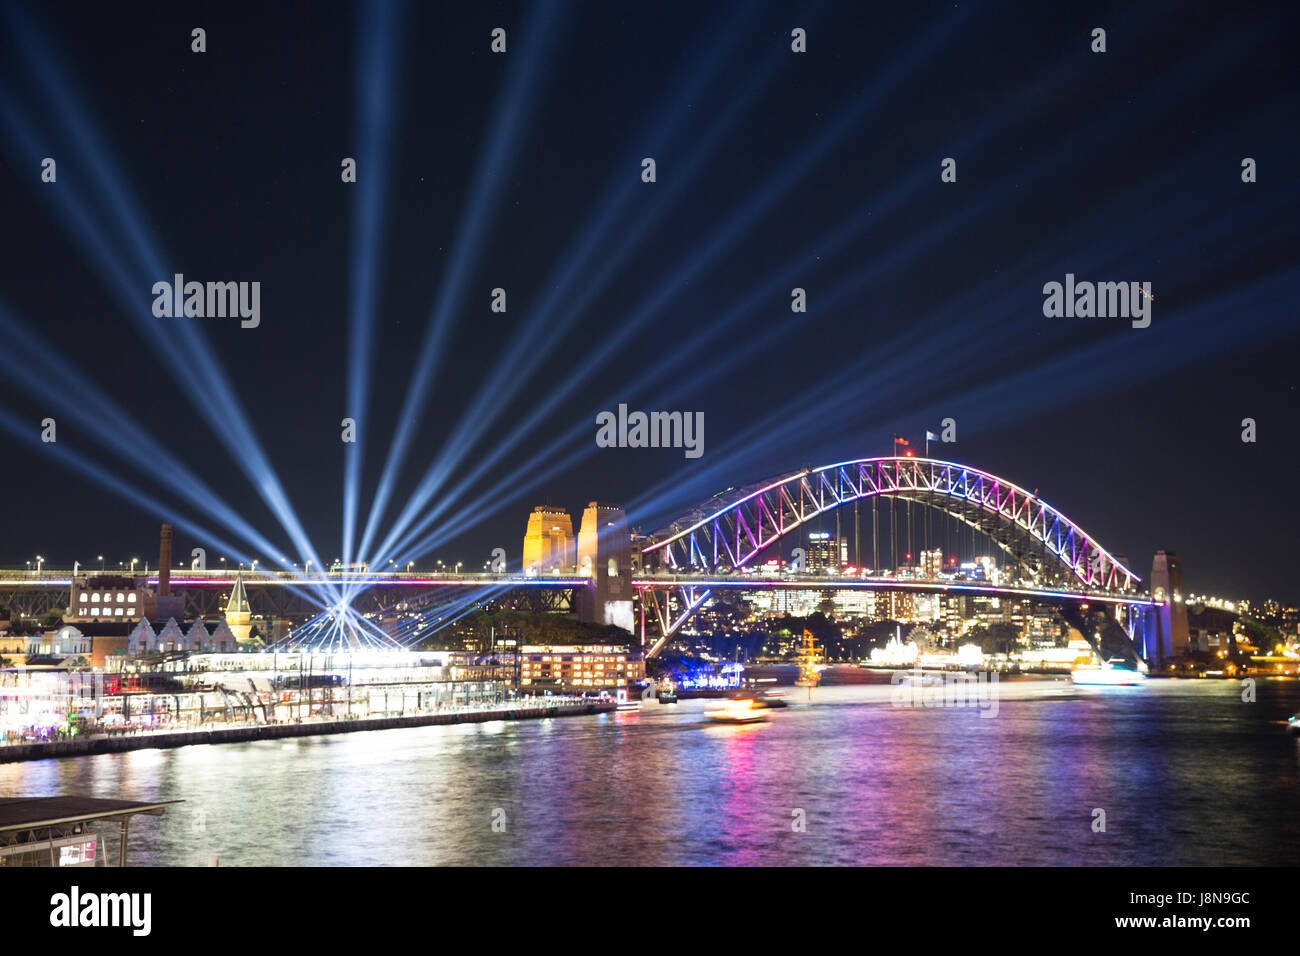 Sydney, Australia, Tuesday 30th May 2017.Sydney Harbour bridge and  Vivid Sydney light show at Circular Quay. Credit: - Stock Image